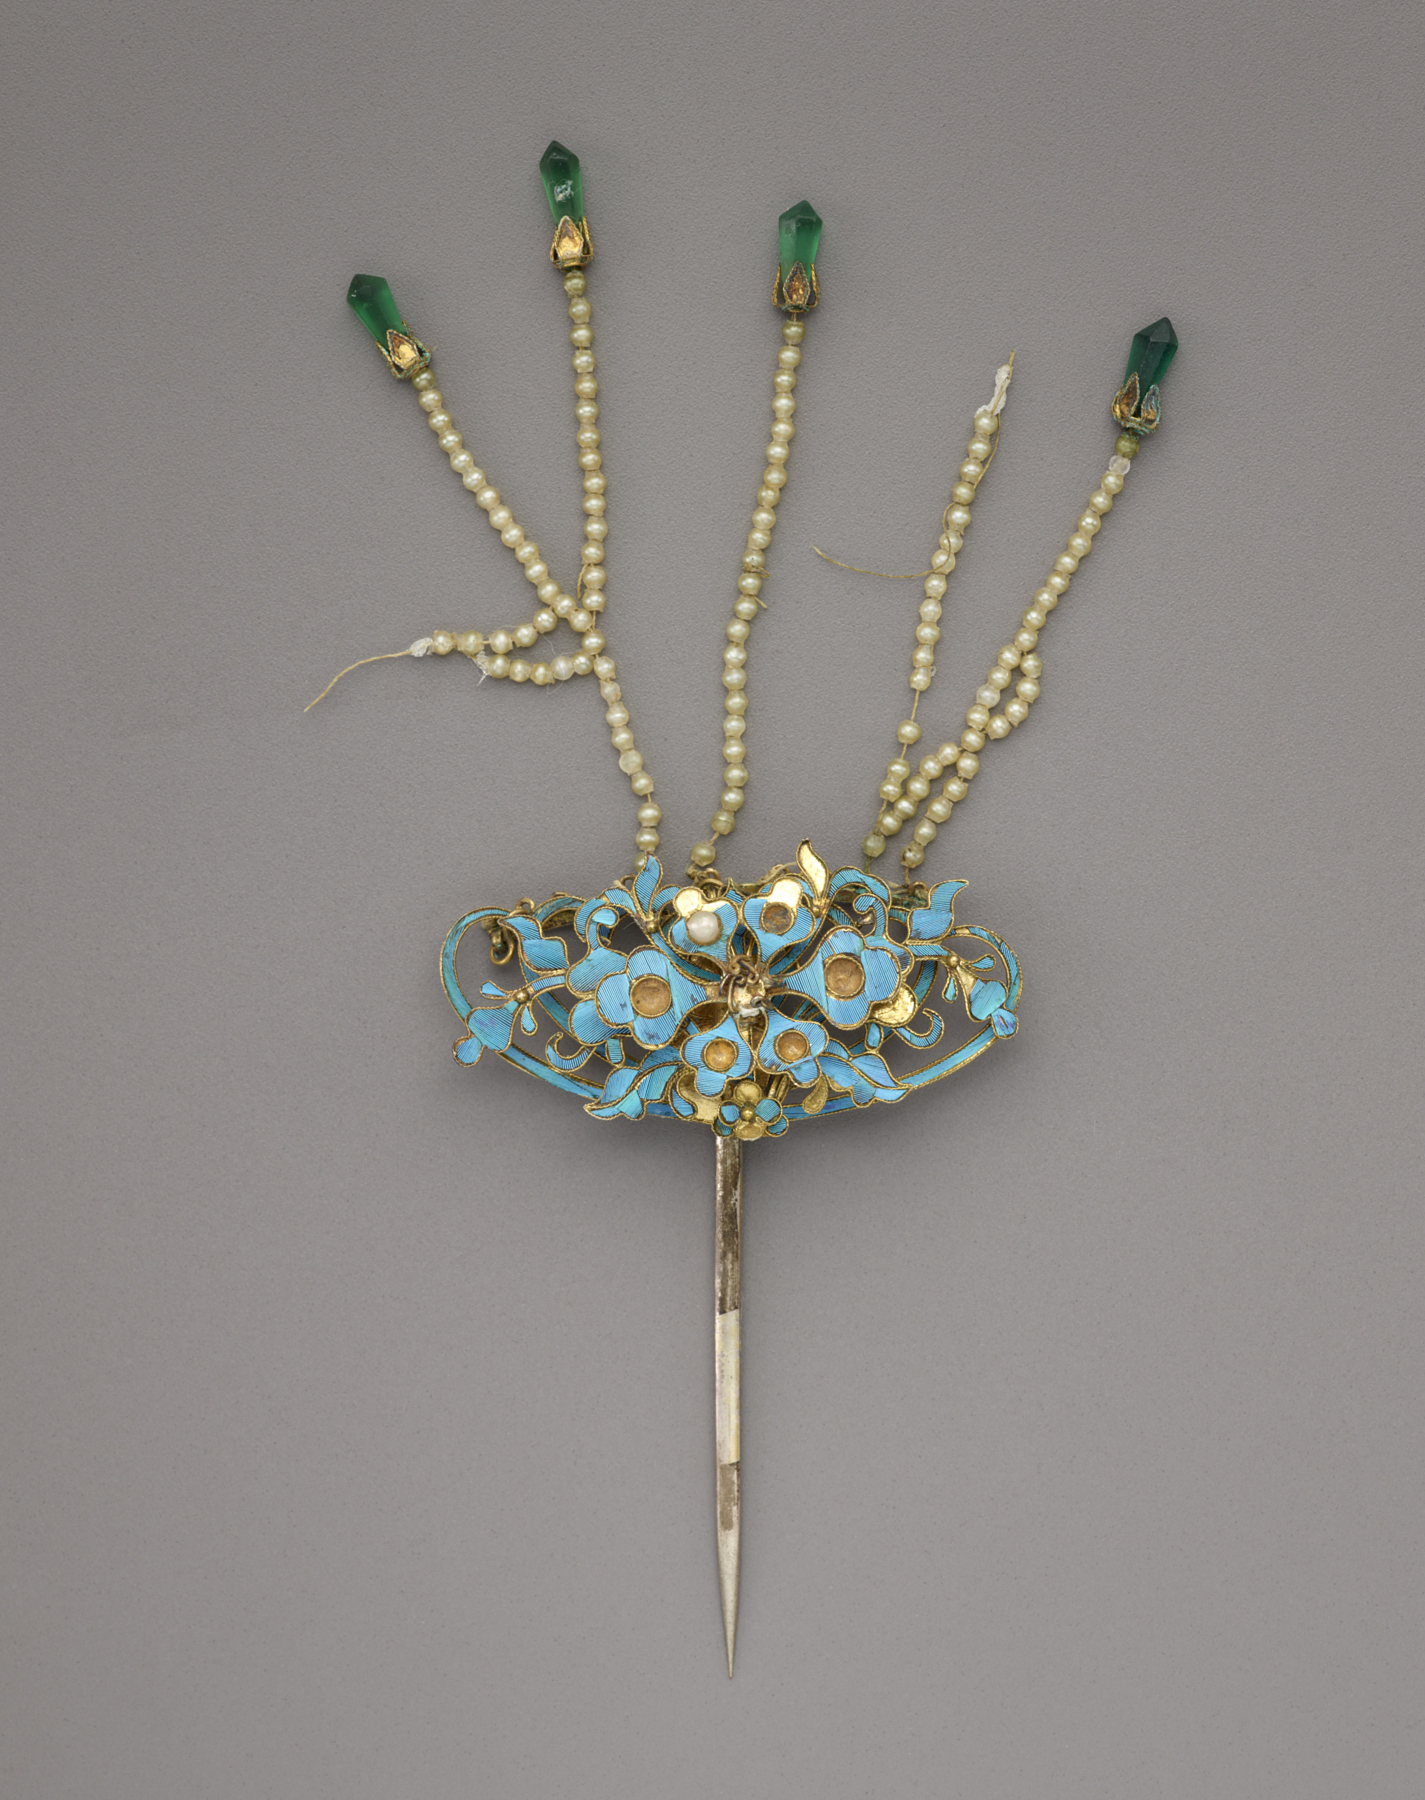 Single prong kingfisher feather hairpin with floral motif and dangles